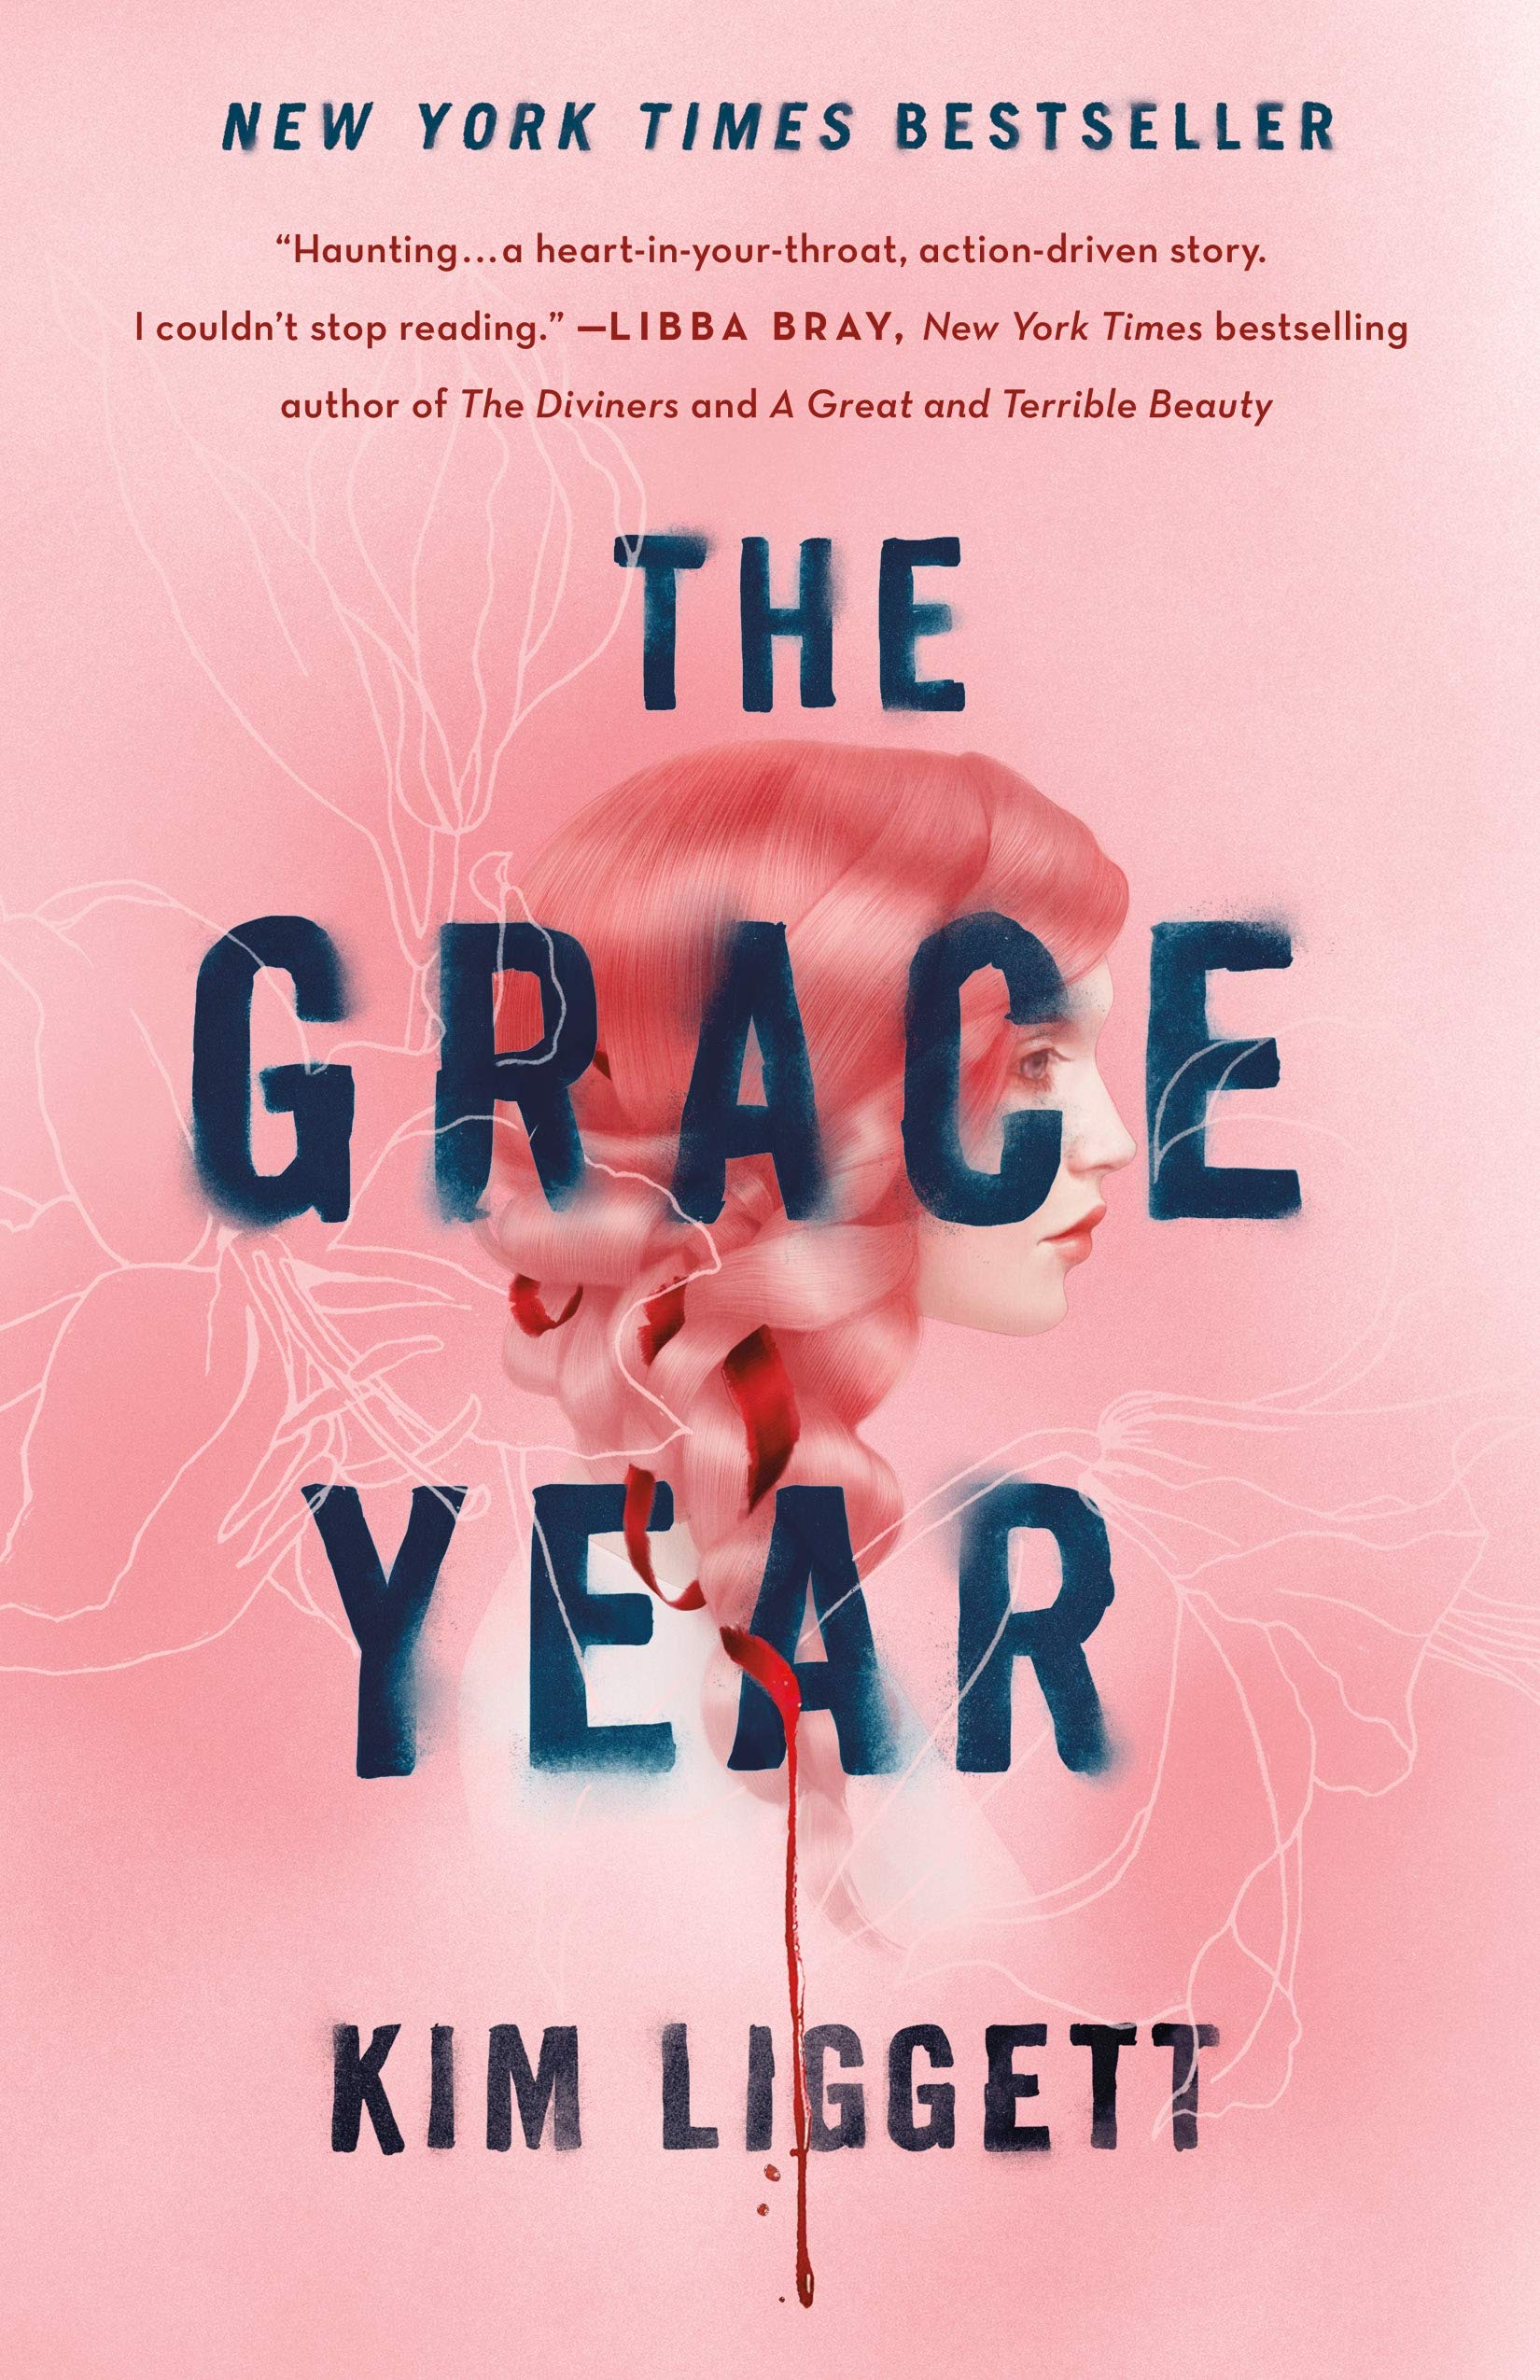 Amazon.com: The Grace Year: A Novel (9781250145444): Liggett, Kim: Books